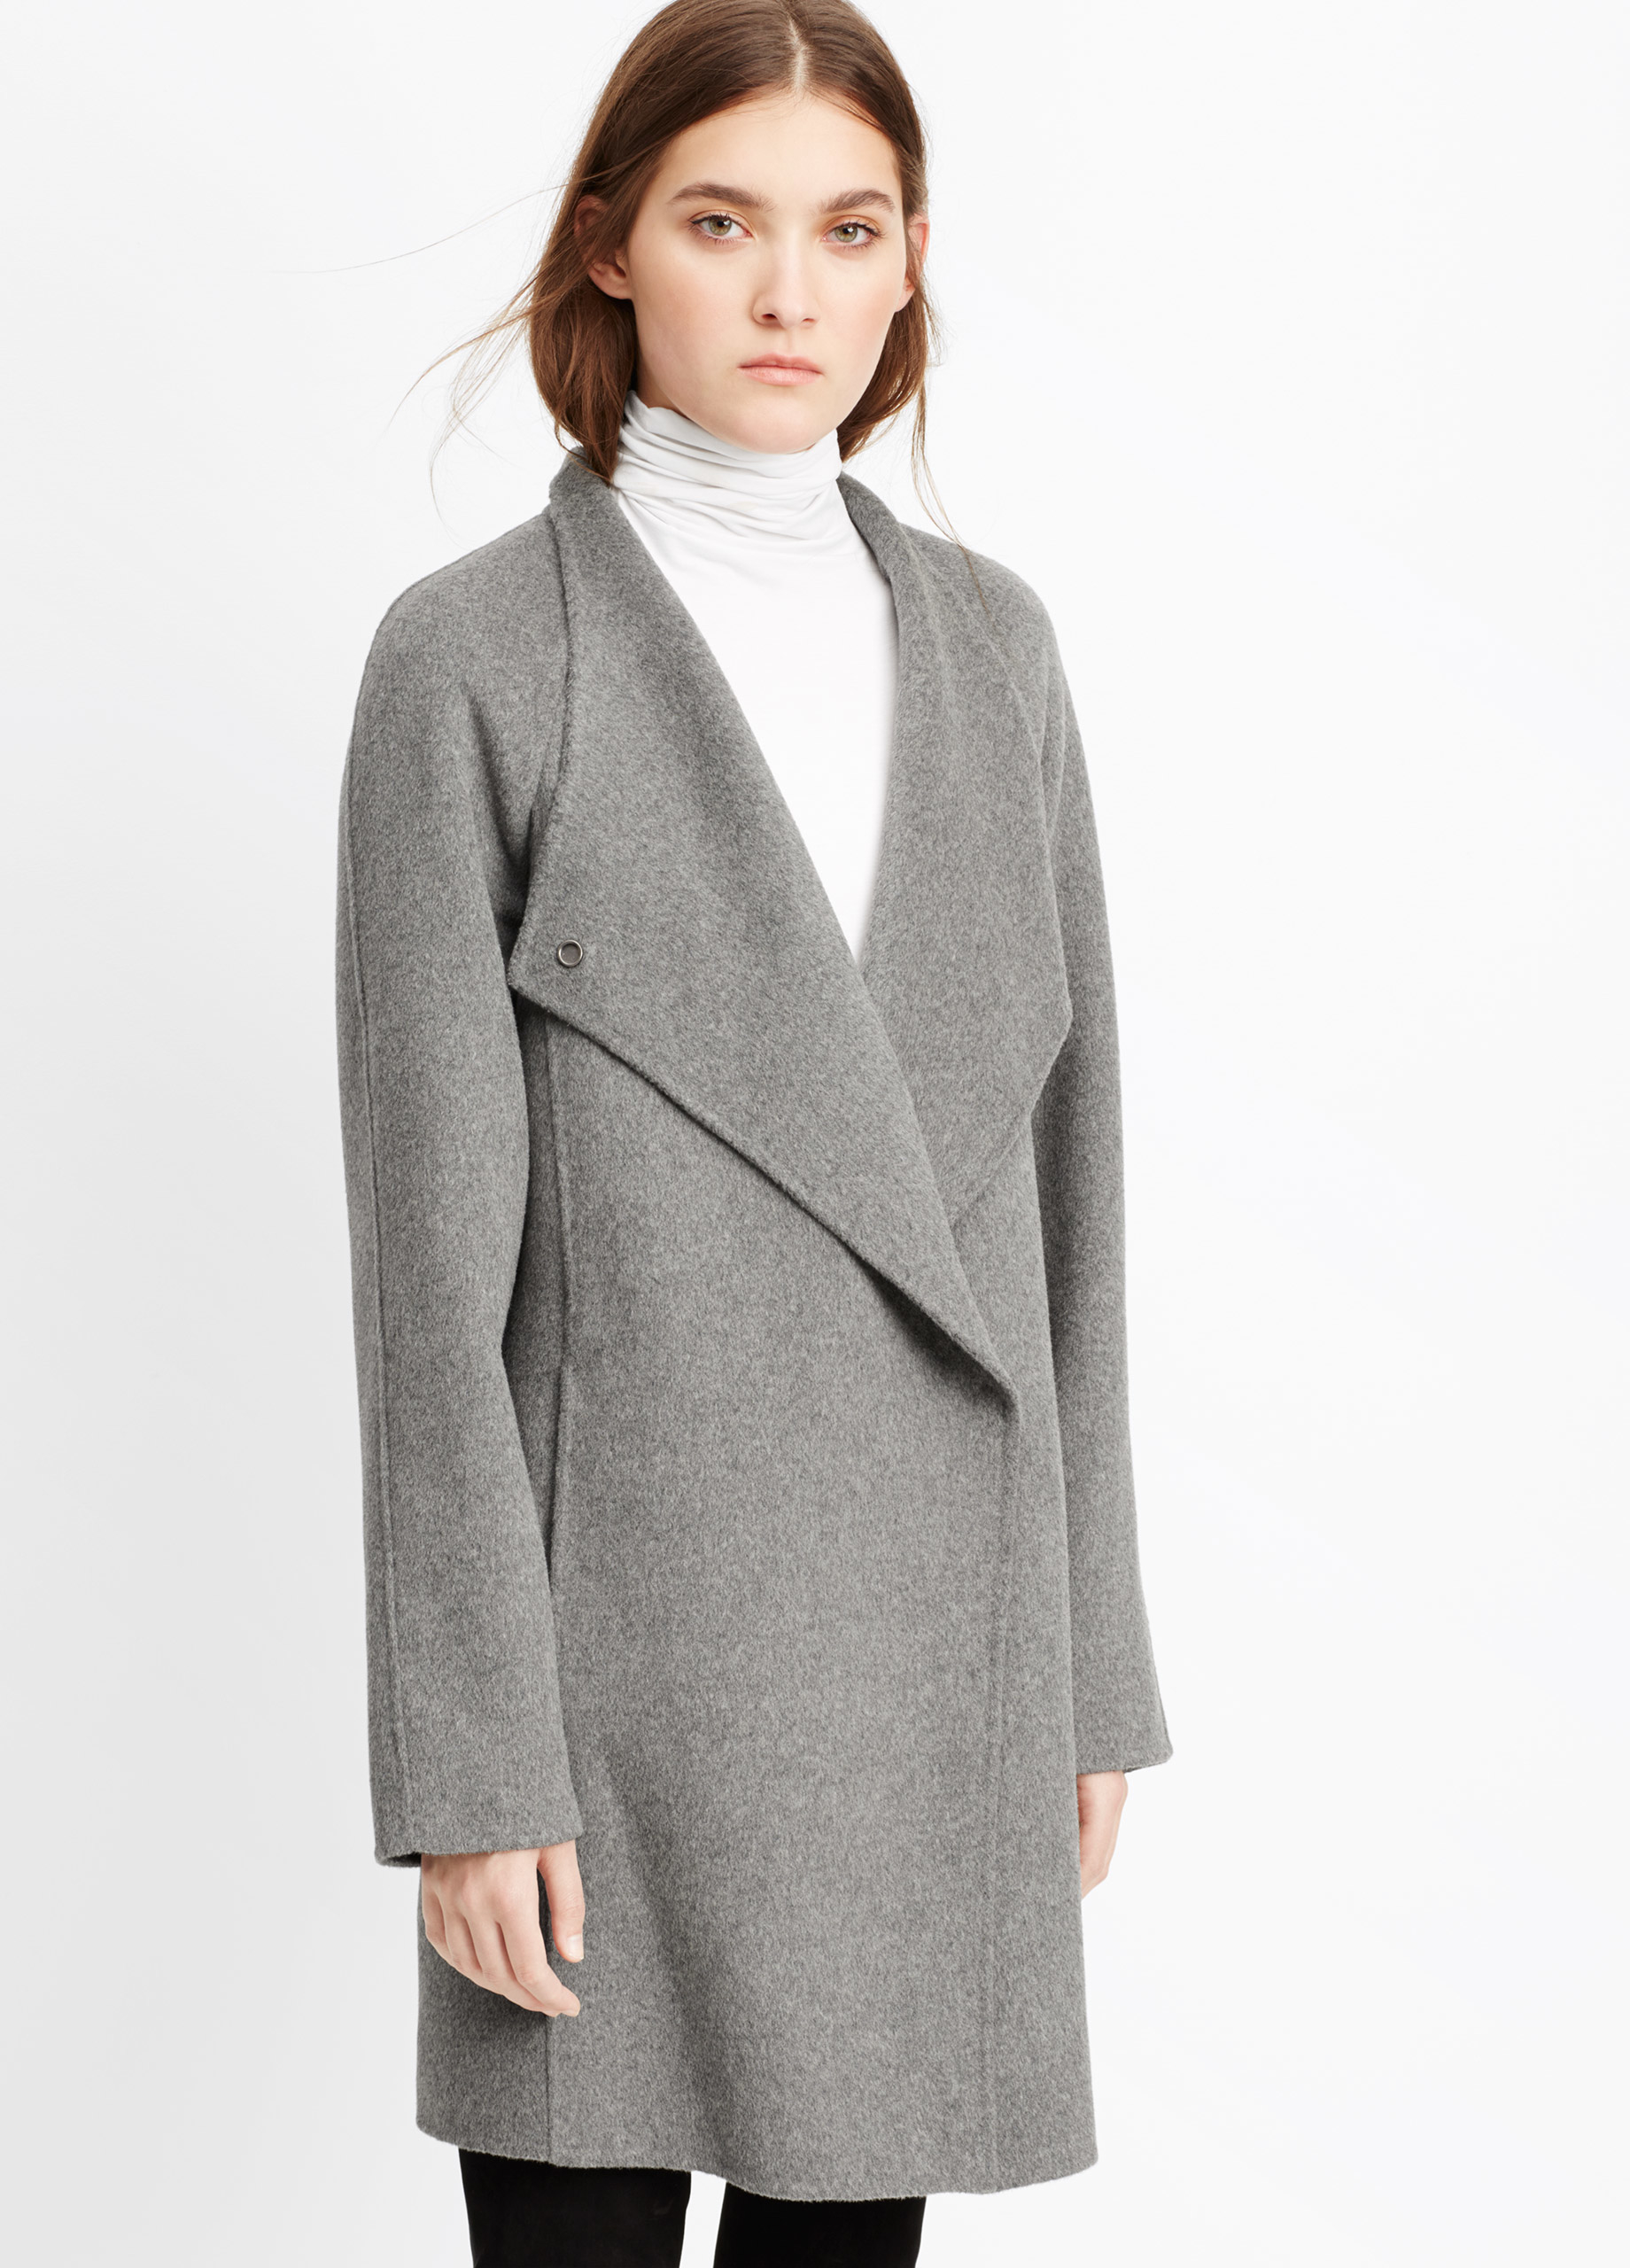 Vince Sweater Backed Asymmetric Front Car Coat in Gray | Lyst